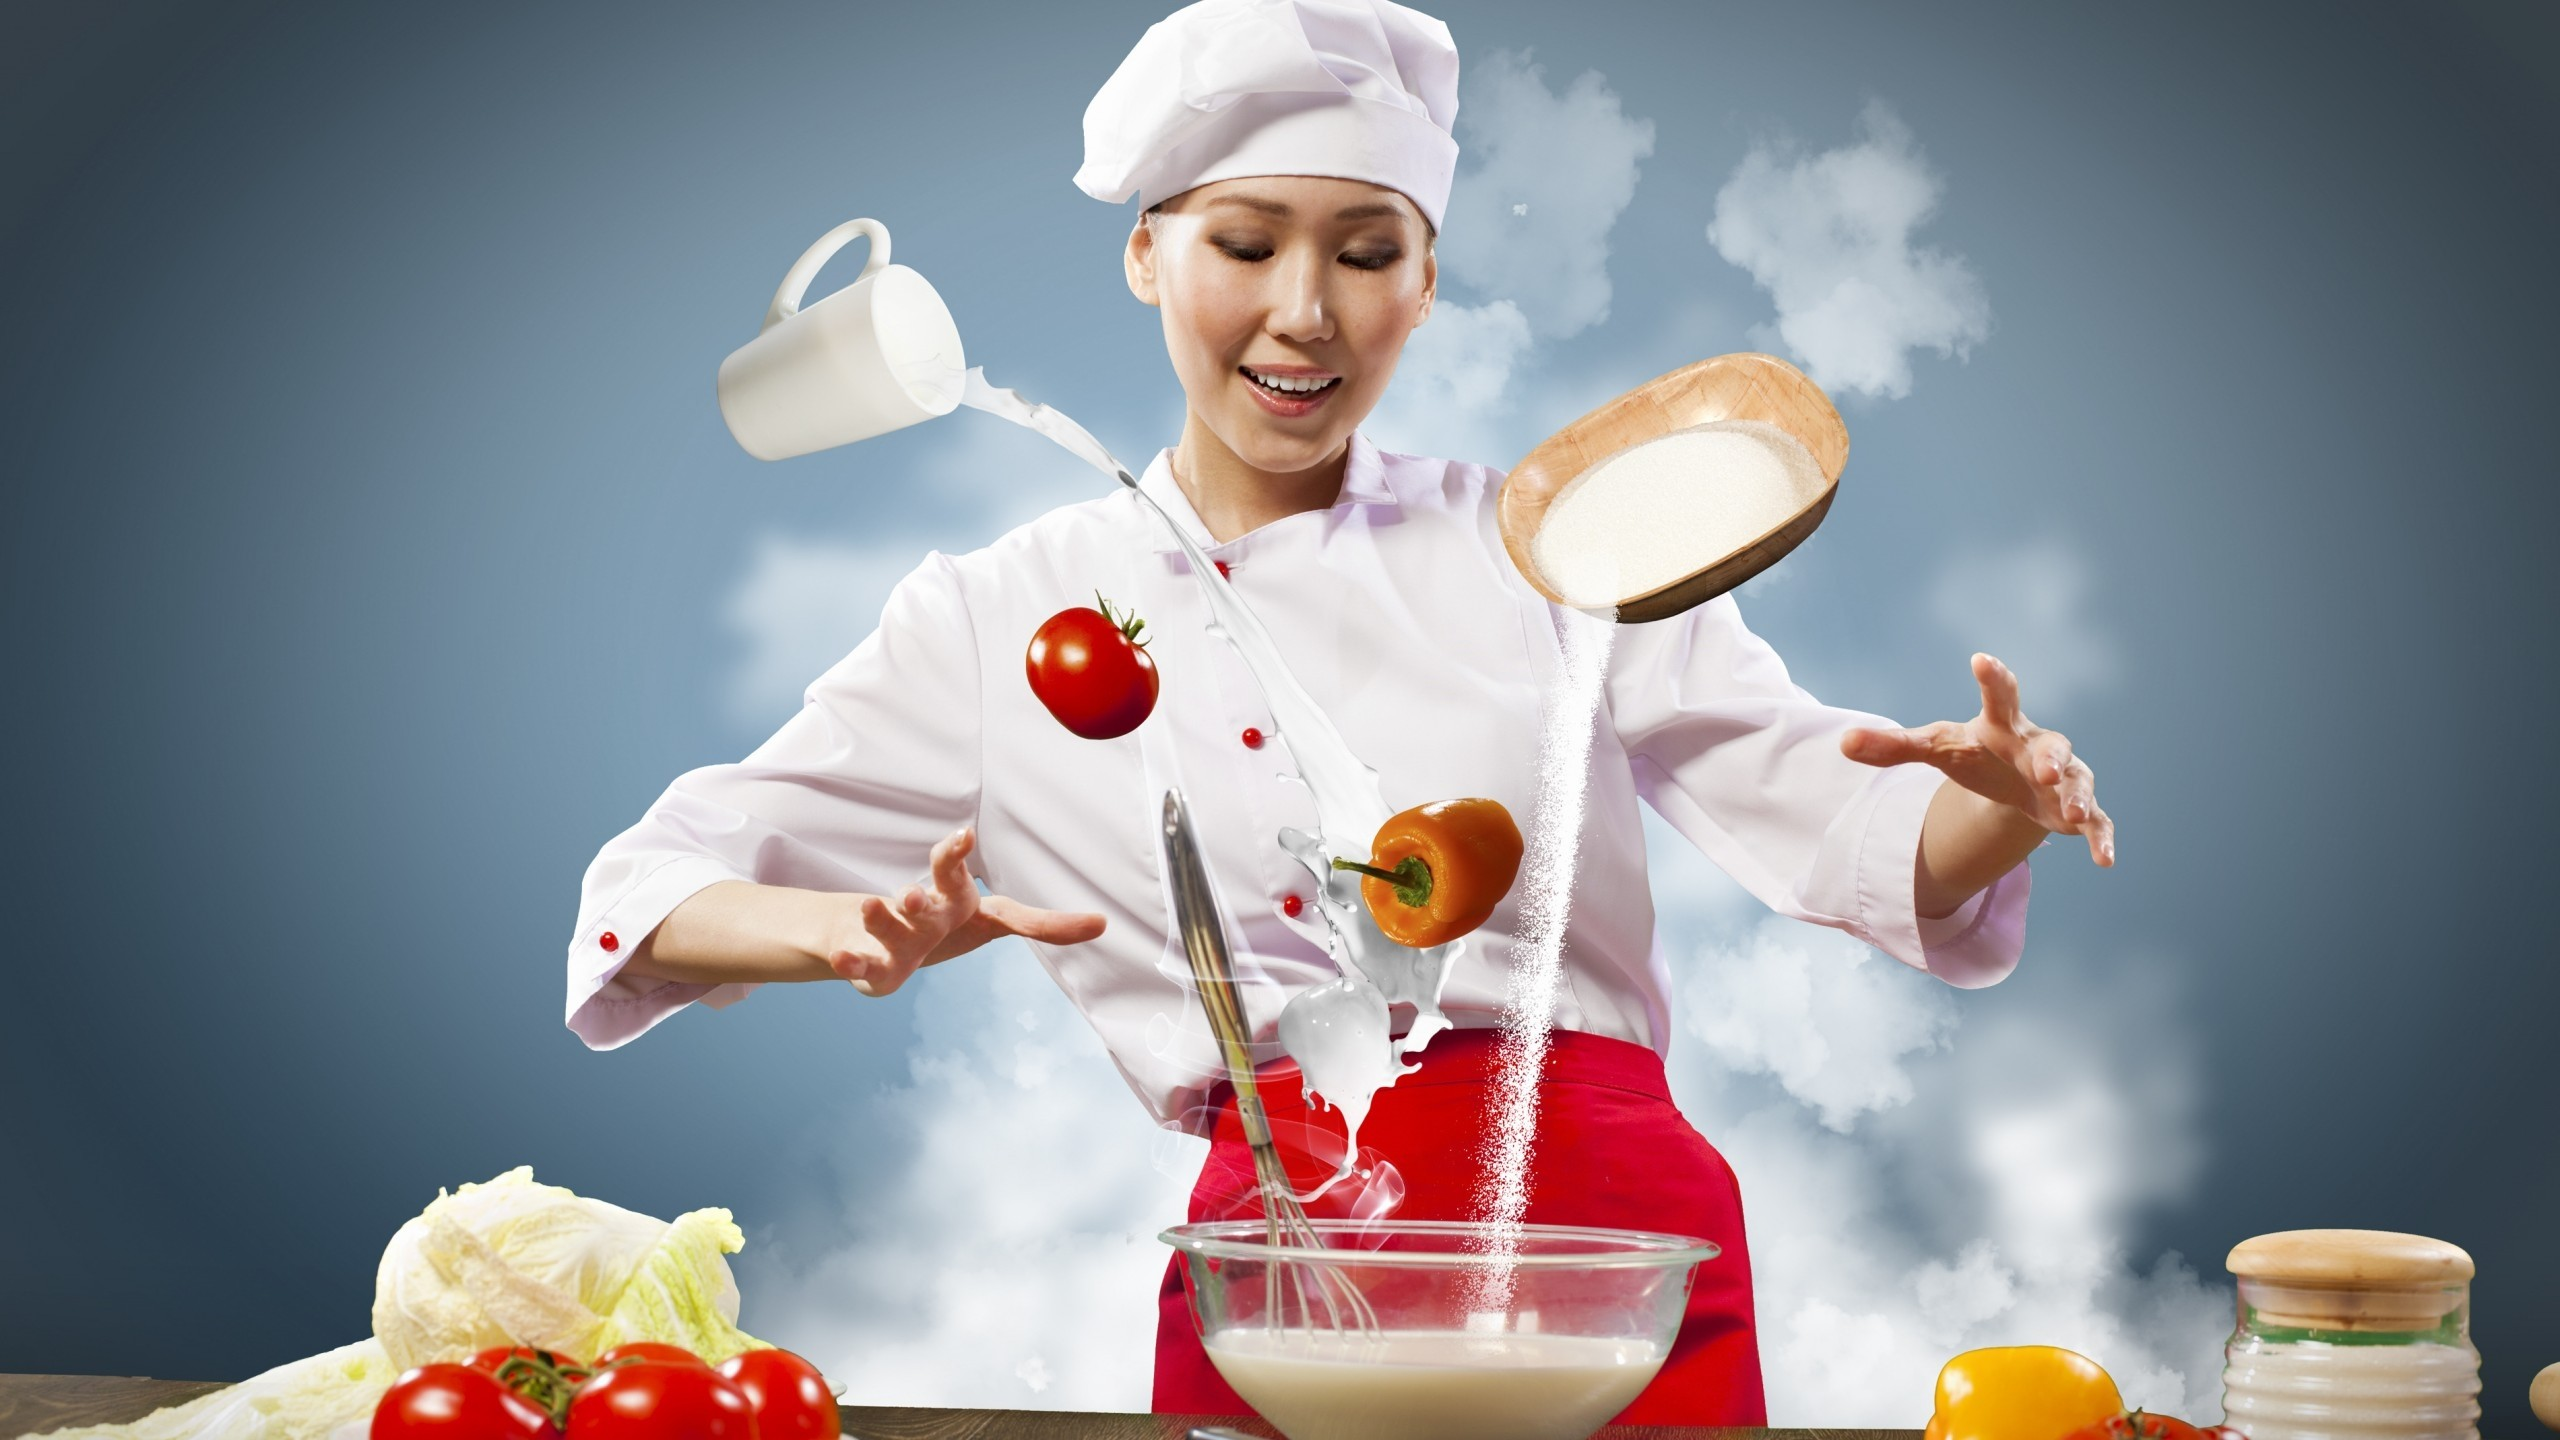 Chef Wallpapers ·① WallpaperTag